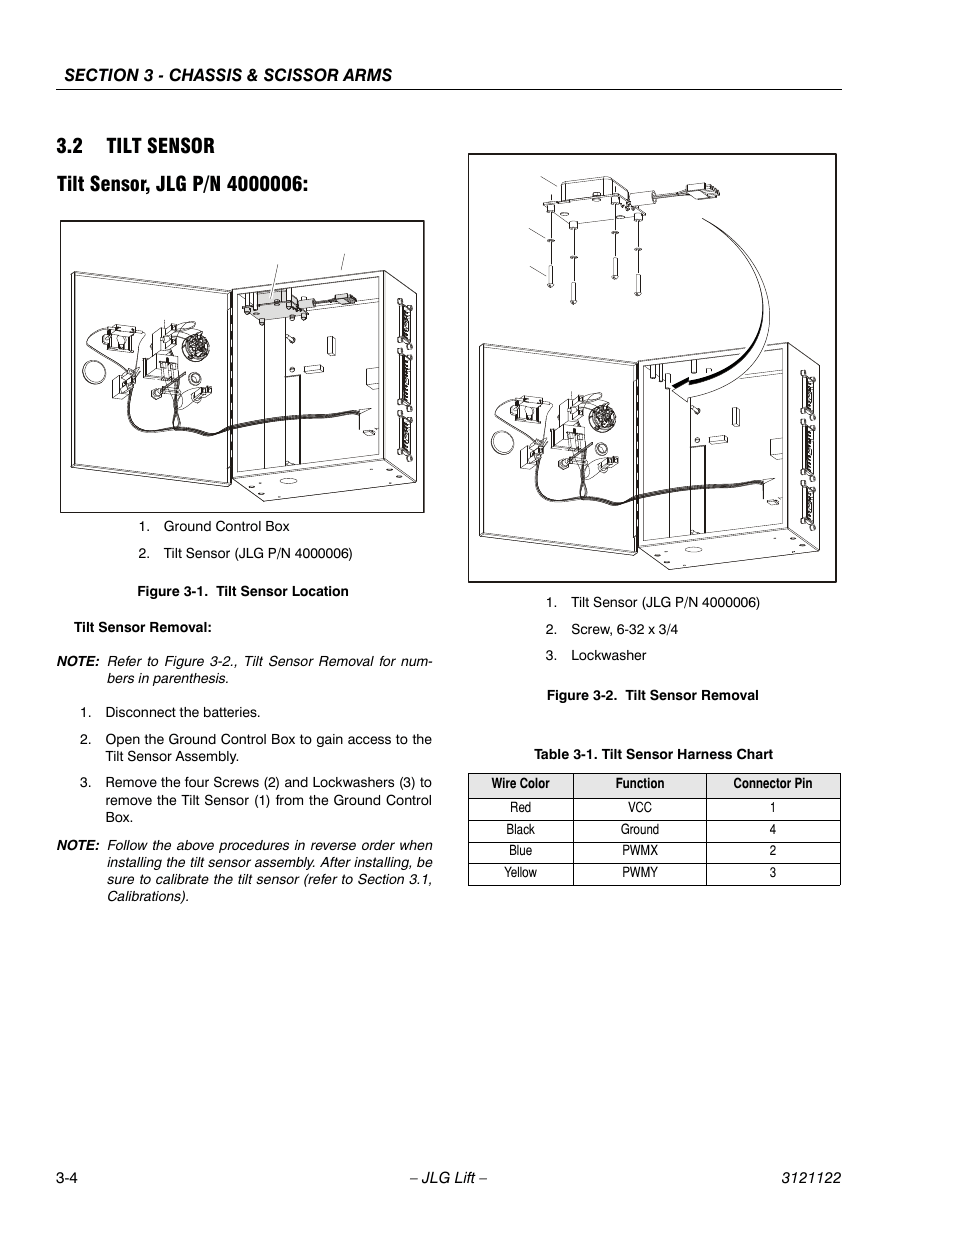 medium resolution of  jlg m4069 ansi service manual page32 diagrams 23203408 jlg model 42 wiring diagram jlg 40 h